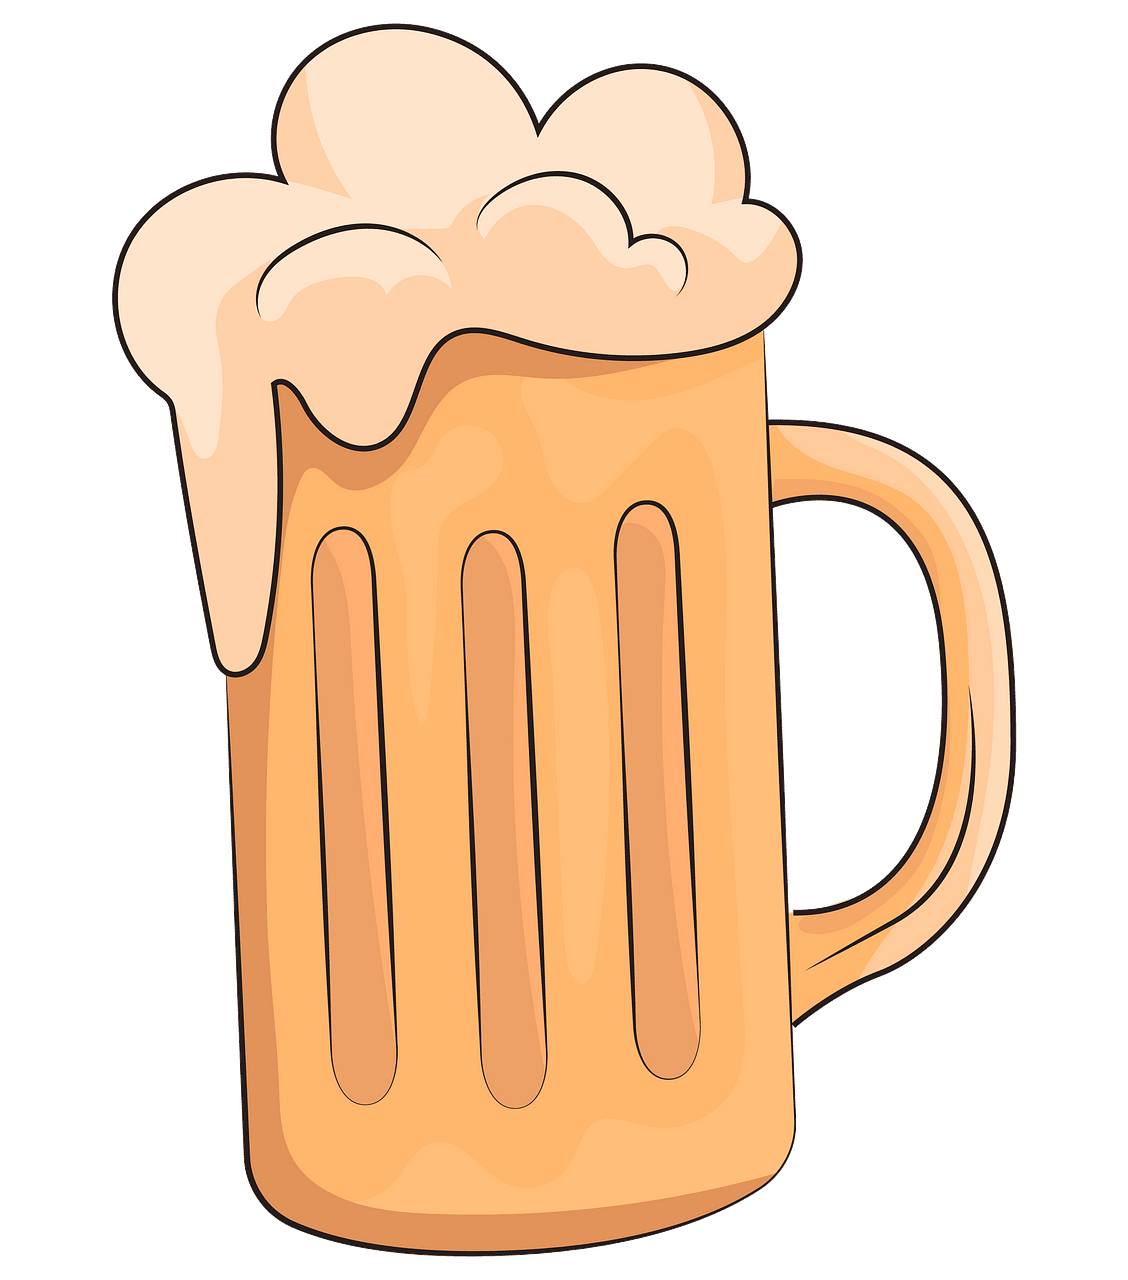 Beer mug clipart. Free download..